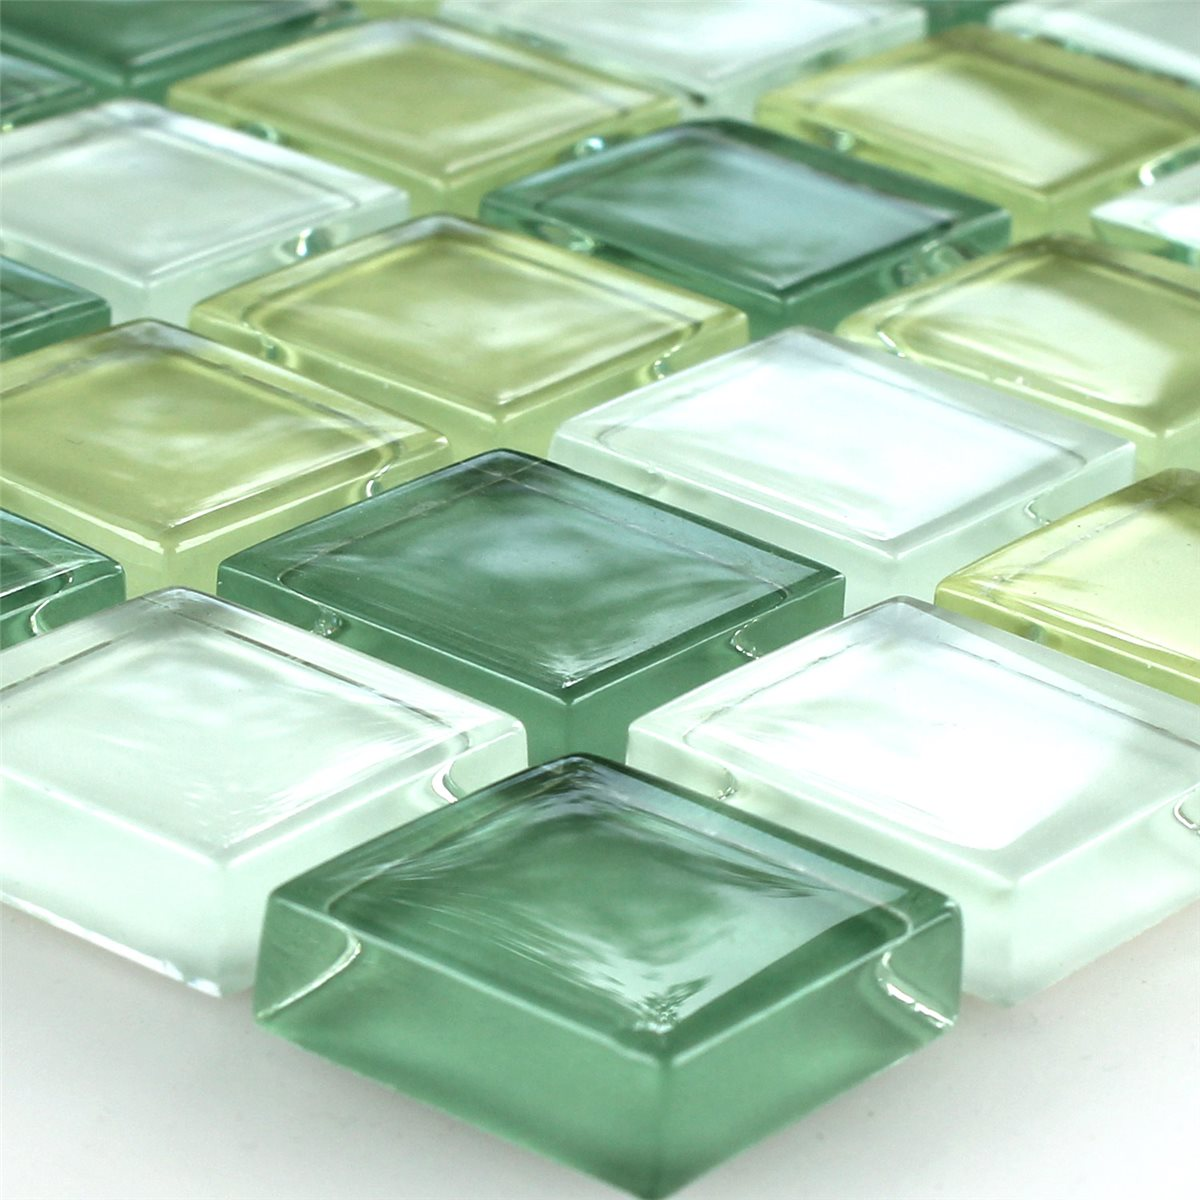 crystal glass mosaic tile yellow green 25x25x8mm www. Black Bedroom Furniture Sets. Home Design Ideas